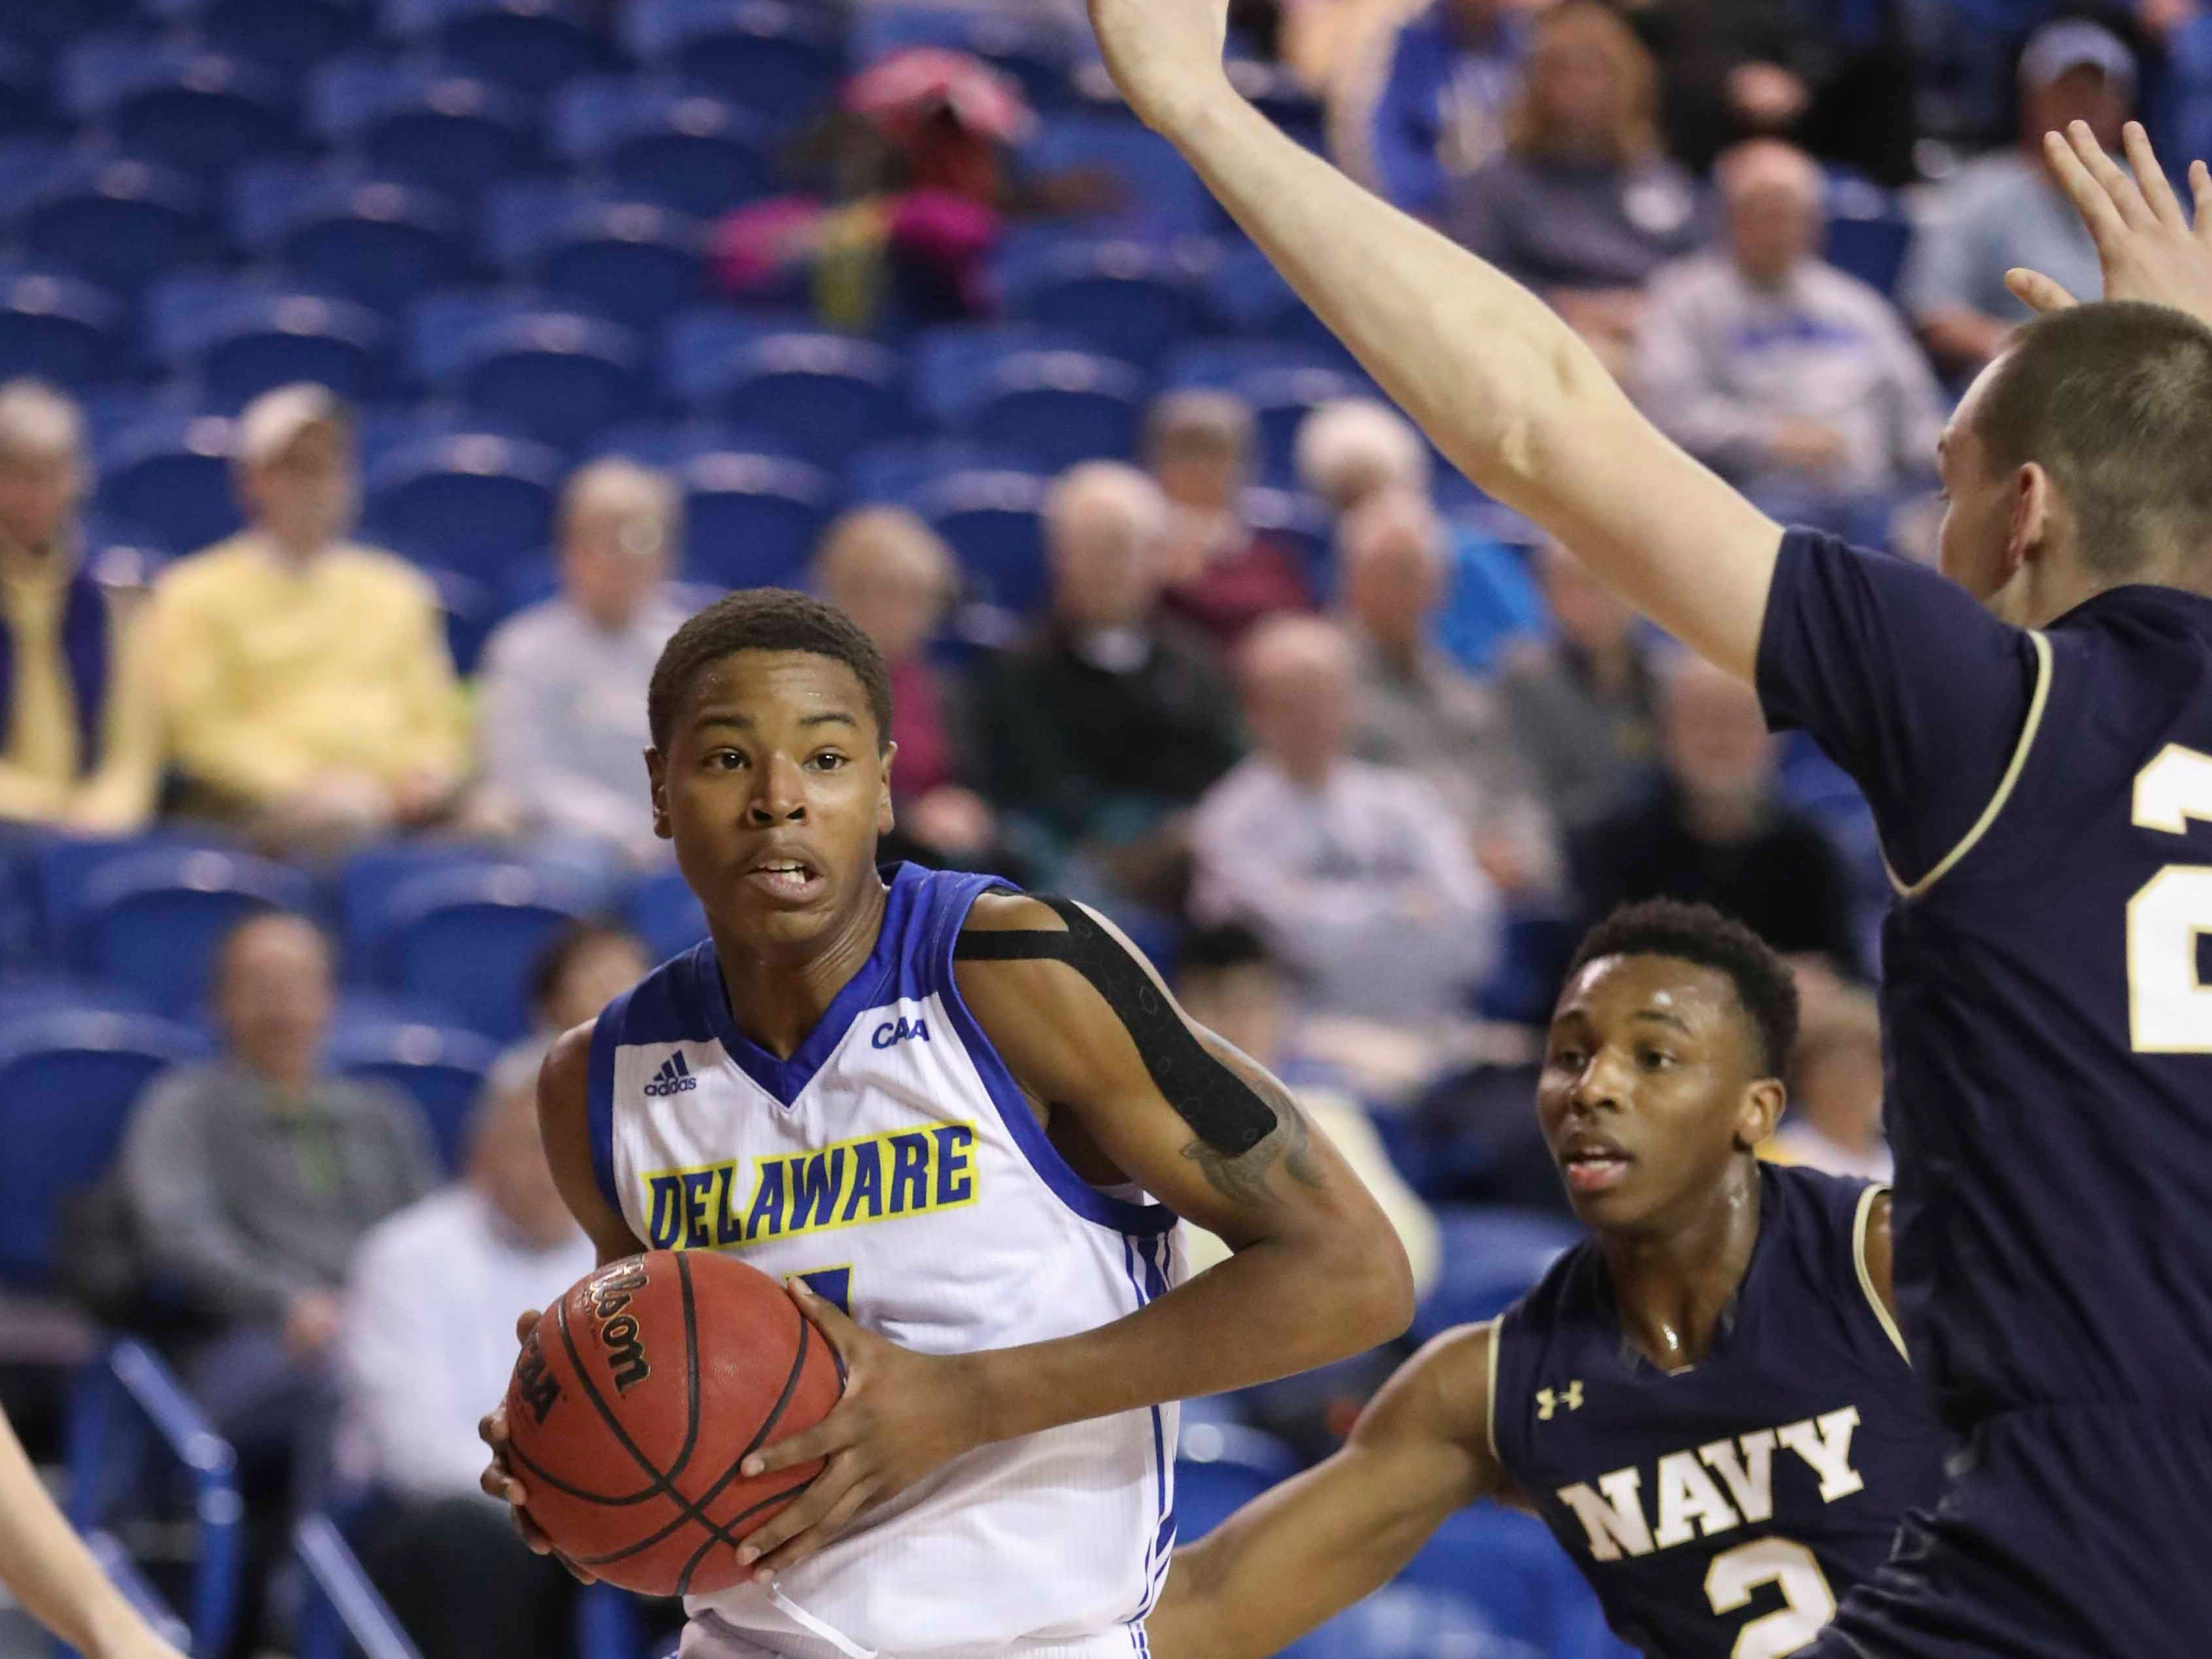 Delaware's Kevin Anderson (left) drives against Navy's Hasan Abdullah (2) and Greg Summers in the first half at the Bob Carpenter Center Wednesday.